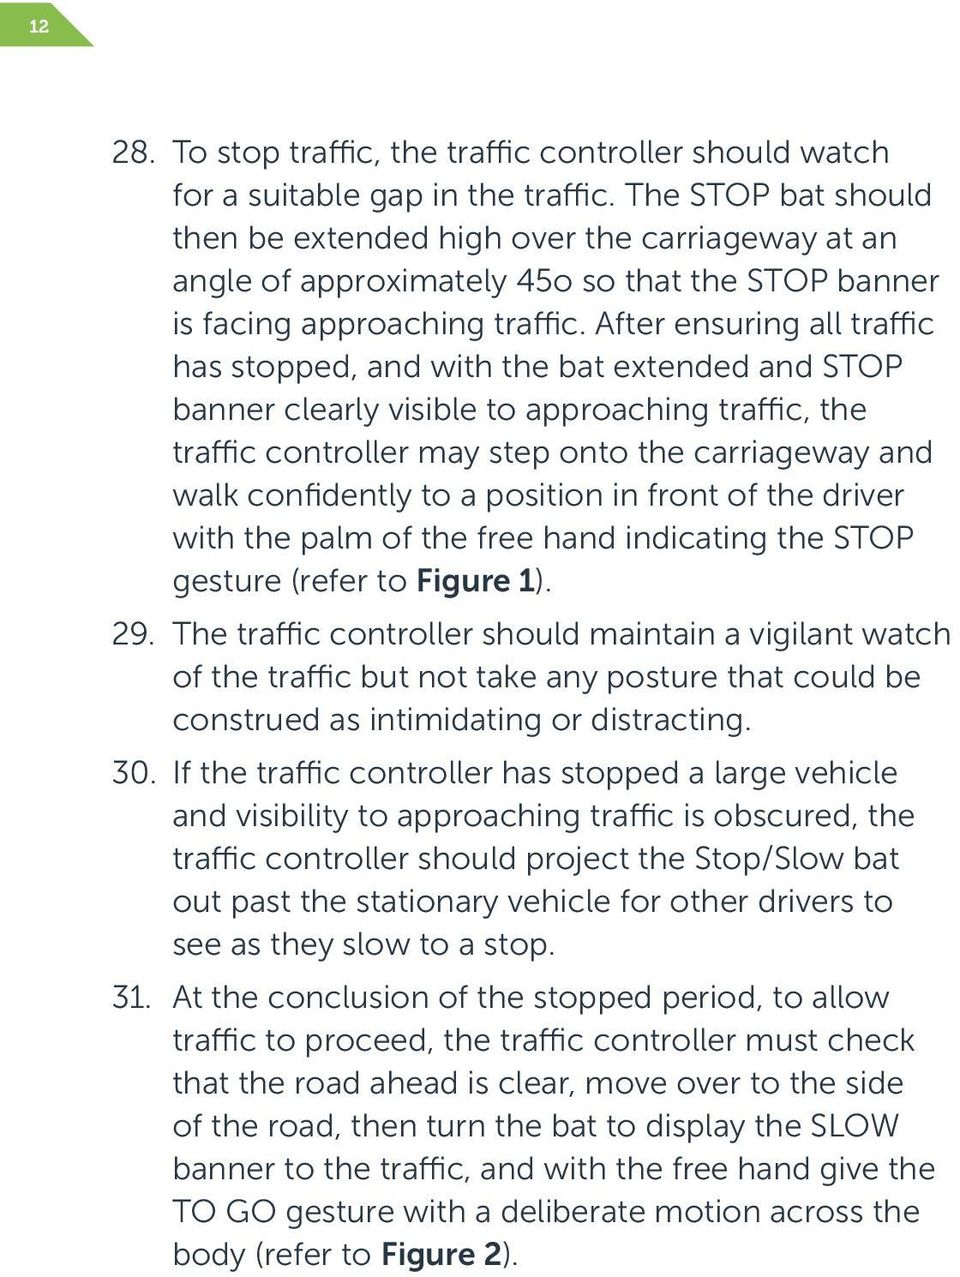 After ensuring all traffic has stopped, and with the bat extended and STOP banner clearly visible to approaching traffic, the traffic controller may step onto the carriageway and walk confidently to